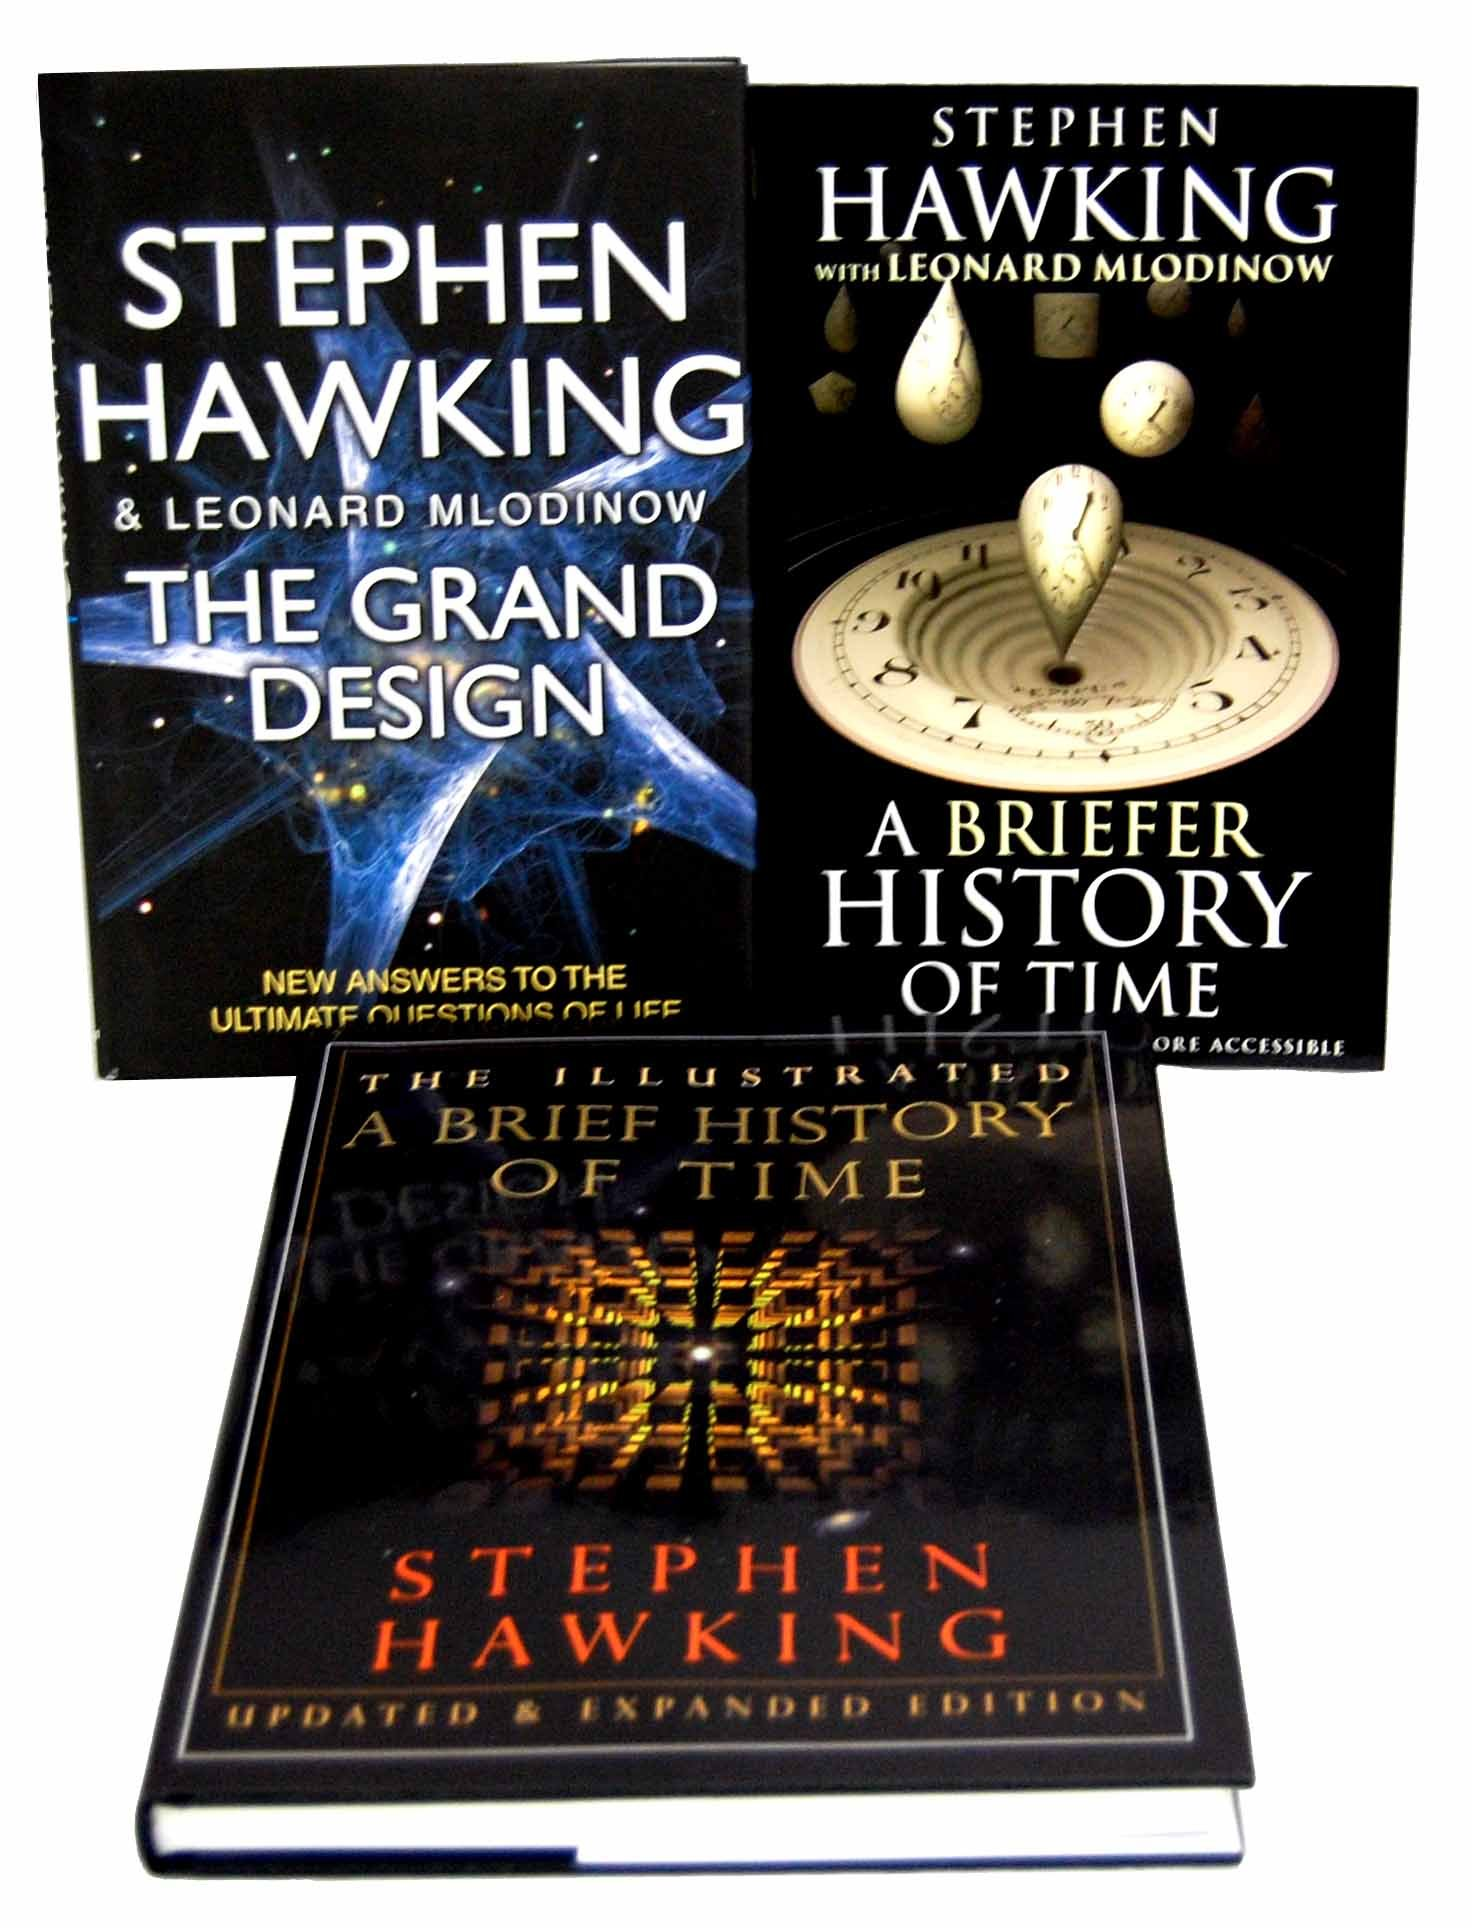 the grand design stephen hawking 3 books collection set 2 hardback 1 paperback book the grand design hardcover a briefer history of time paperback a brief history of time illustrated hardcover